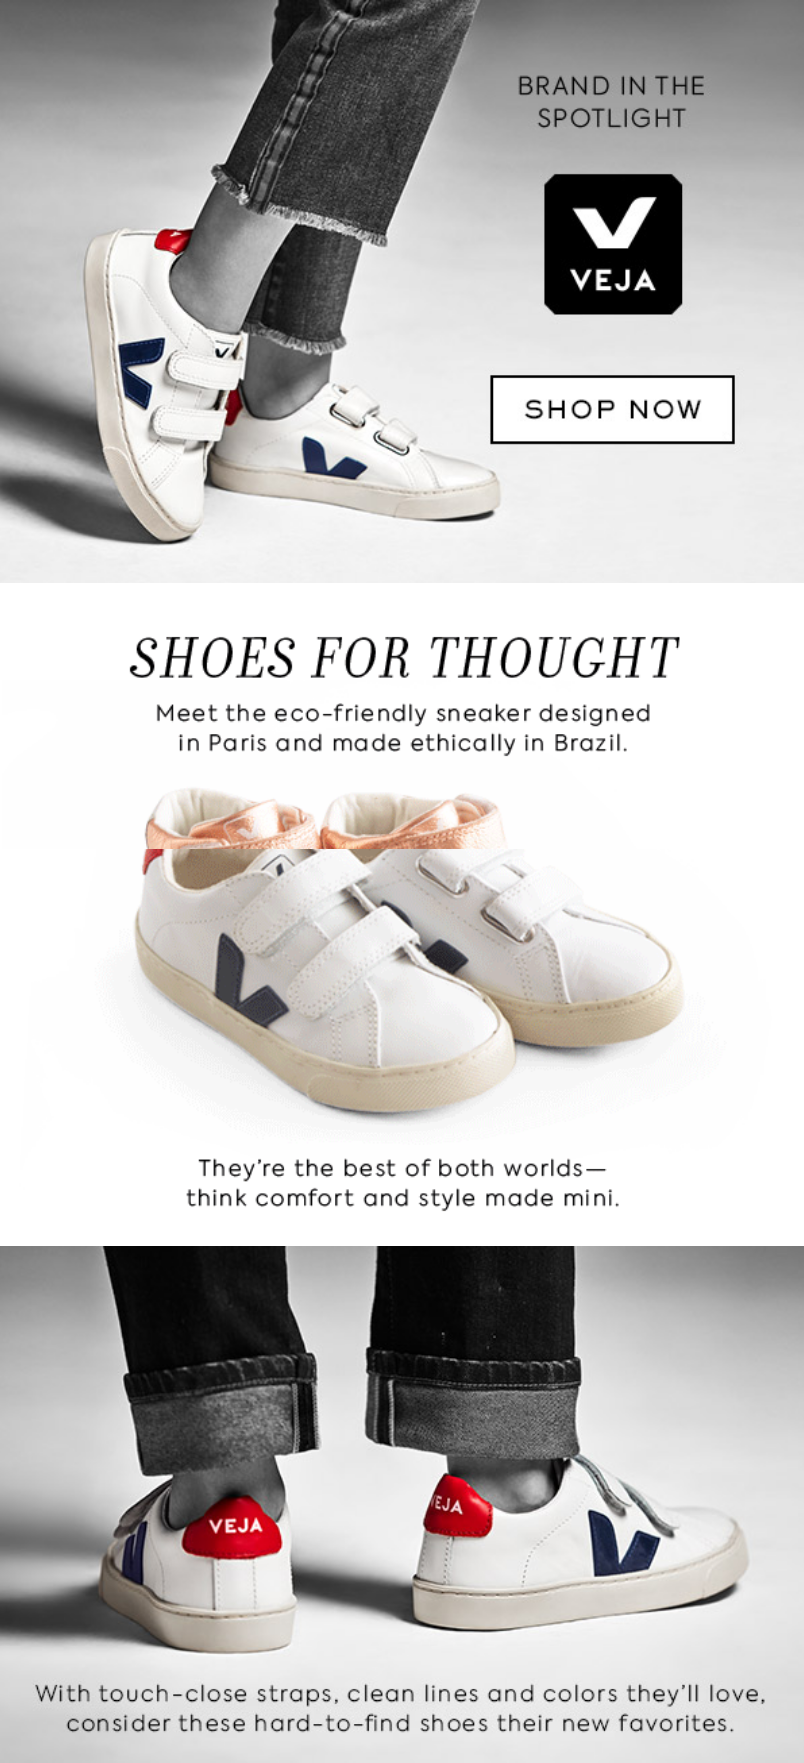 With touch-close straps, clean lines and colors you'll love. Consider these hard-to-find shoes as yo...